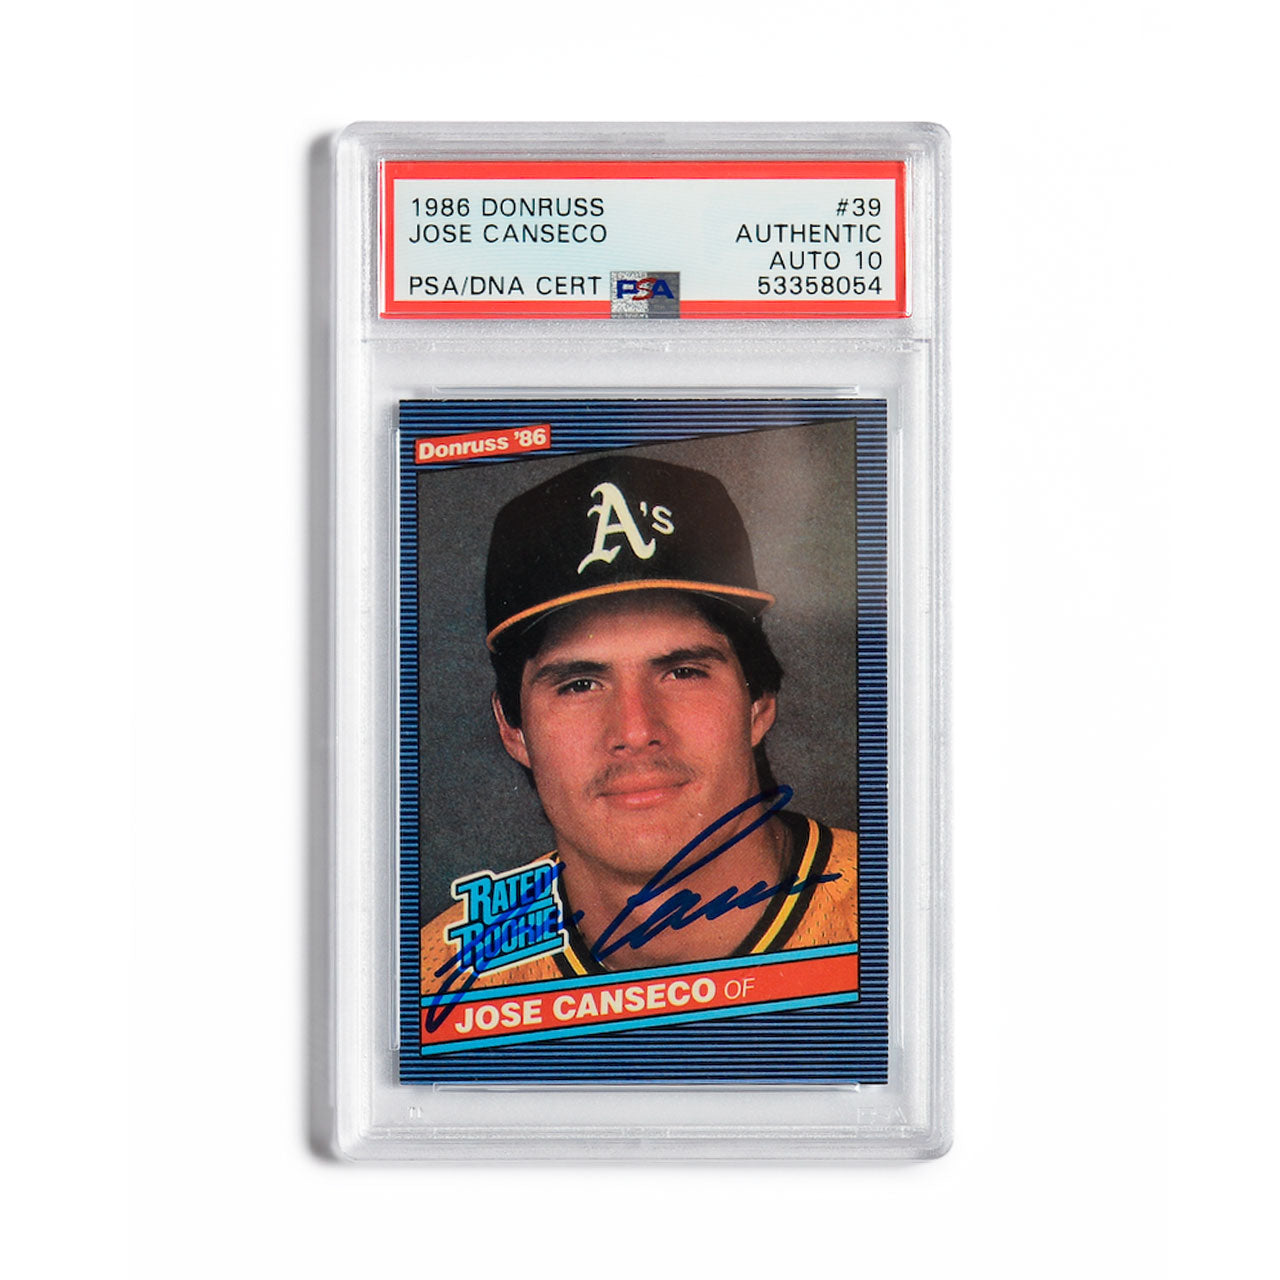 1986 Donruss Jose Canseco Autographed Rookie Card